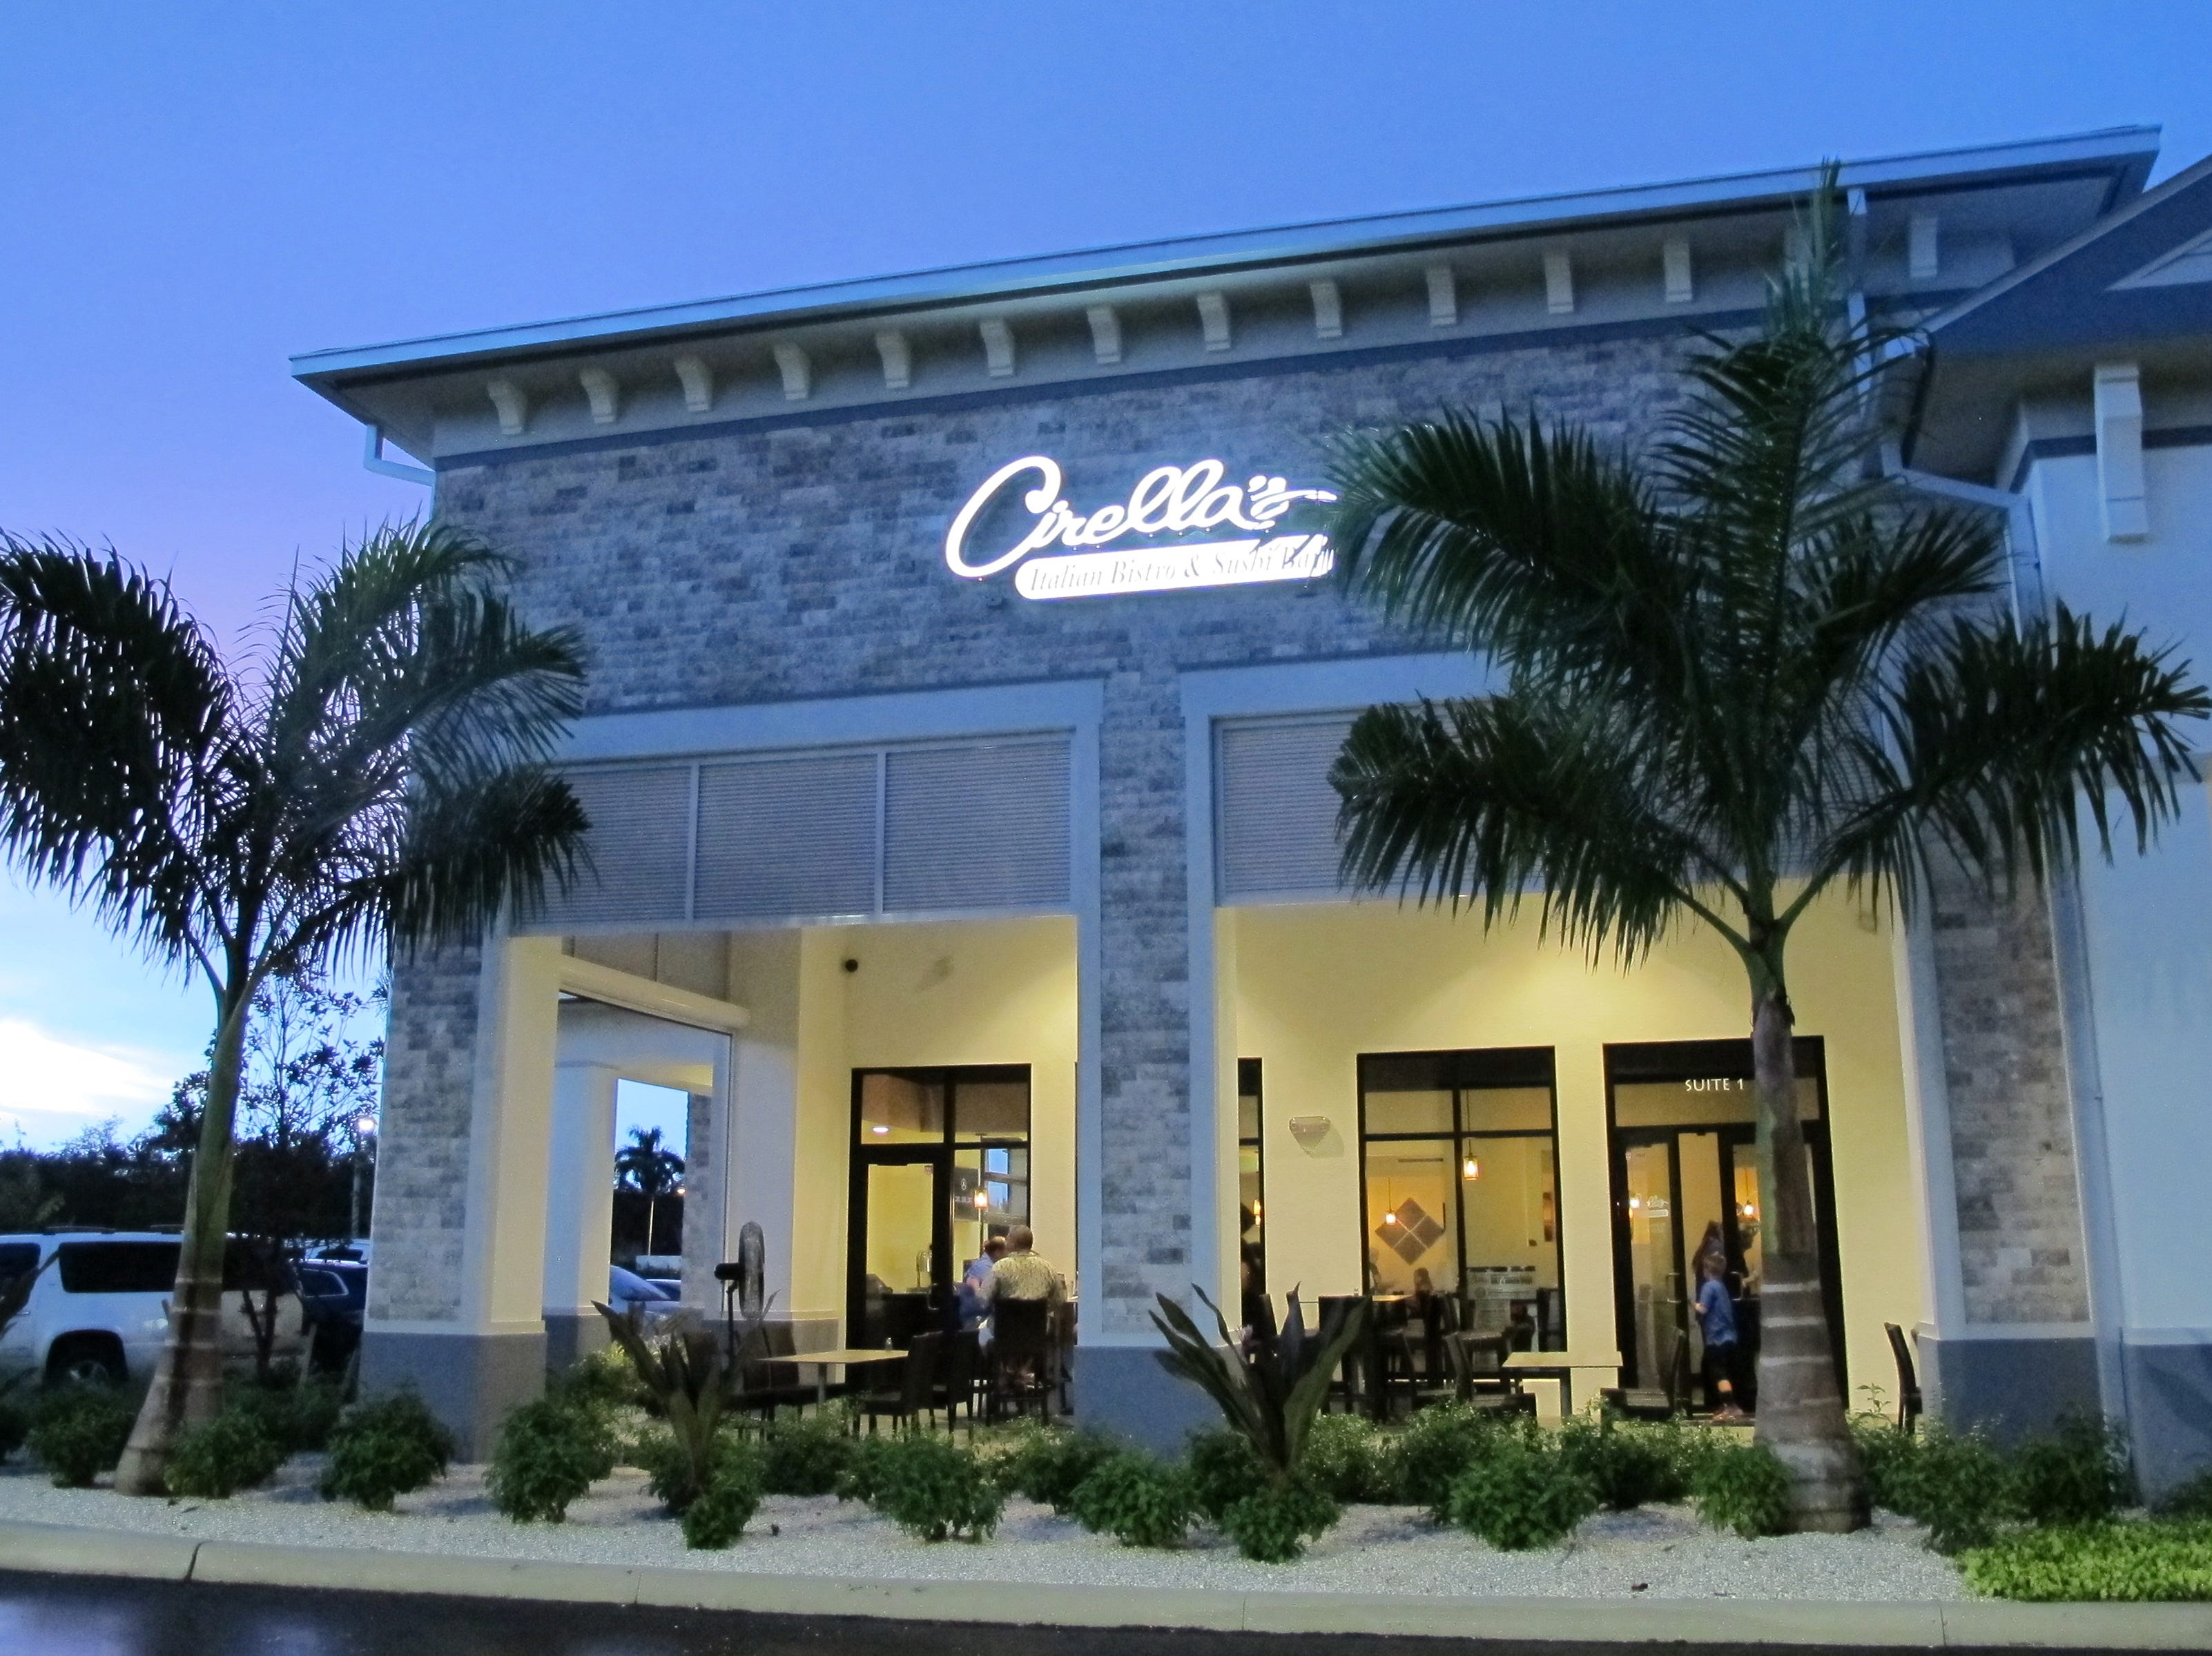 Cirella's Italian Bistro & Sushi Bar opened its second area location in September 2018 on Vanderbilt Beach Road just west of Collier Boulevard in North Naples.